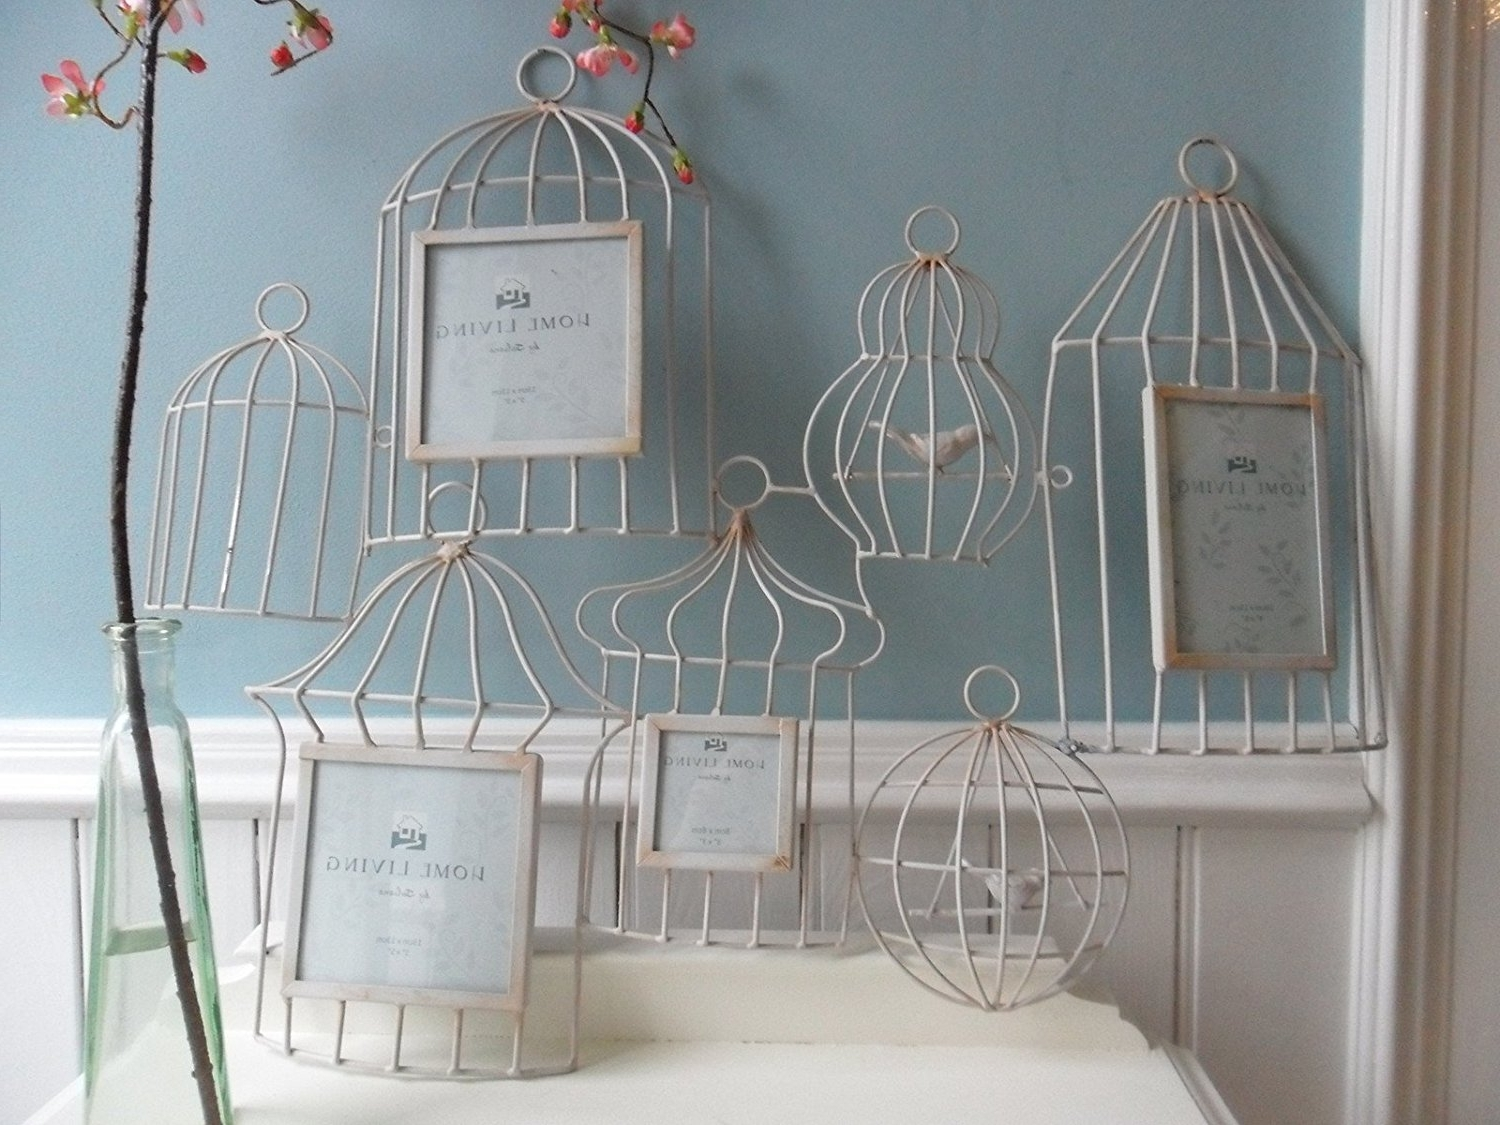 Displaying Gallery of Metal Birdcage Wall Art (View 4 of 15 Photos)